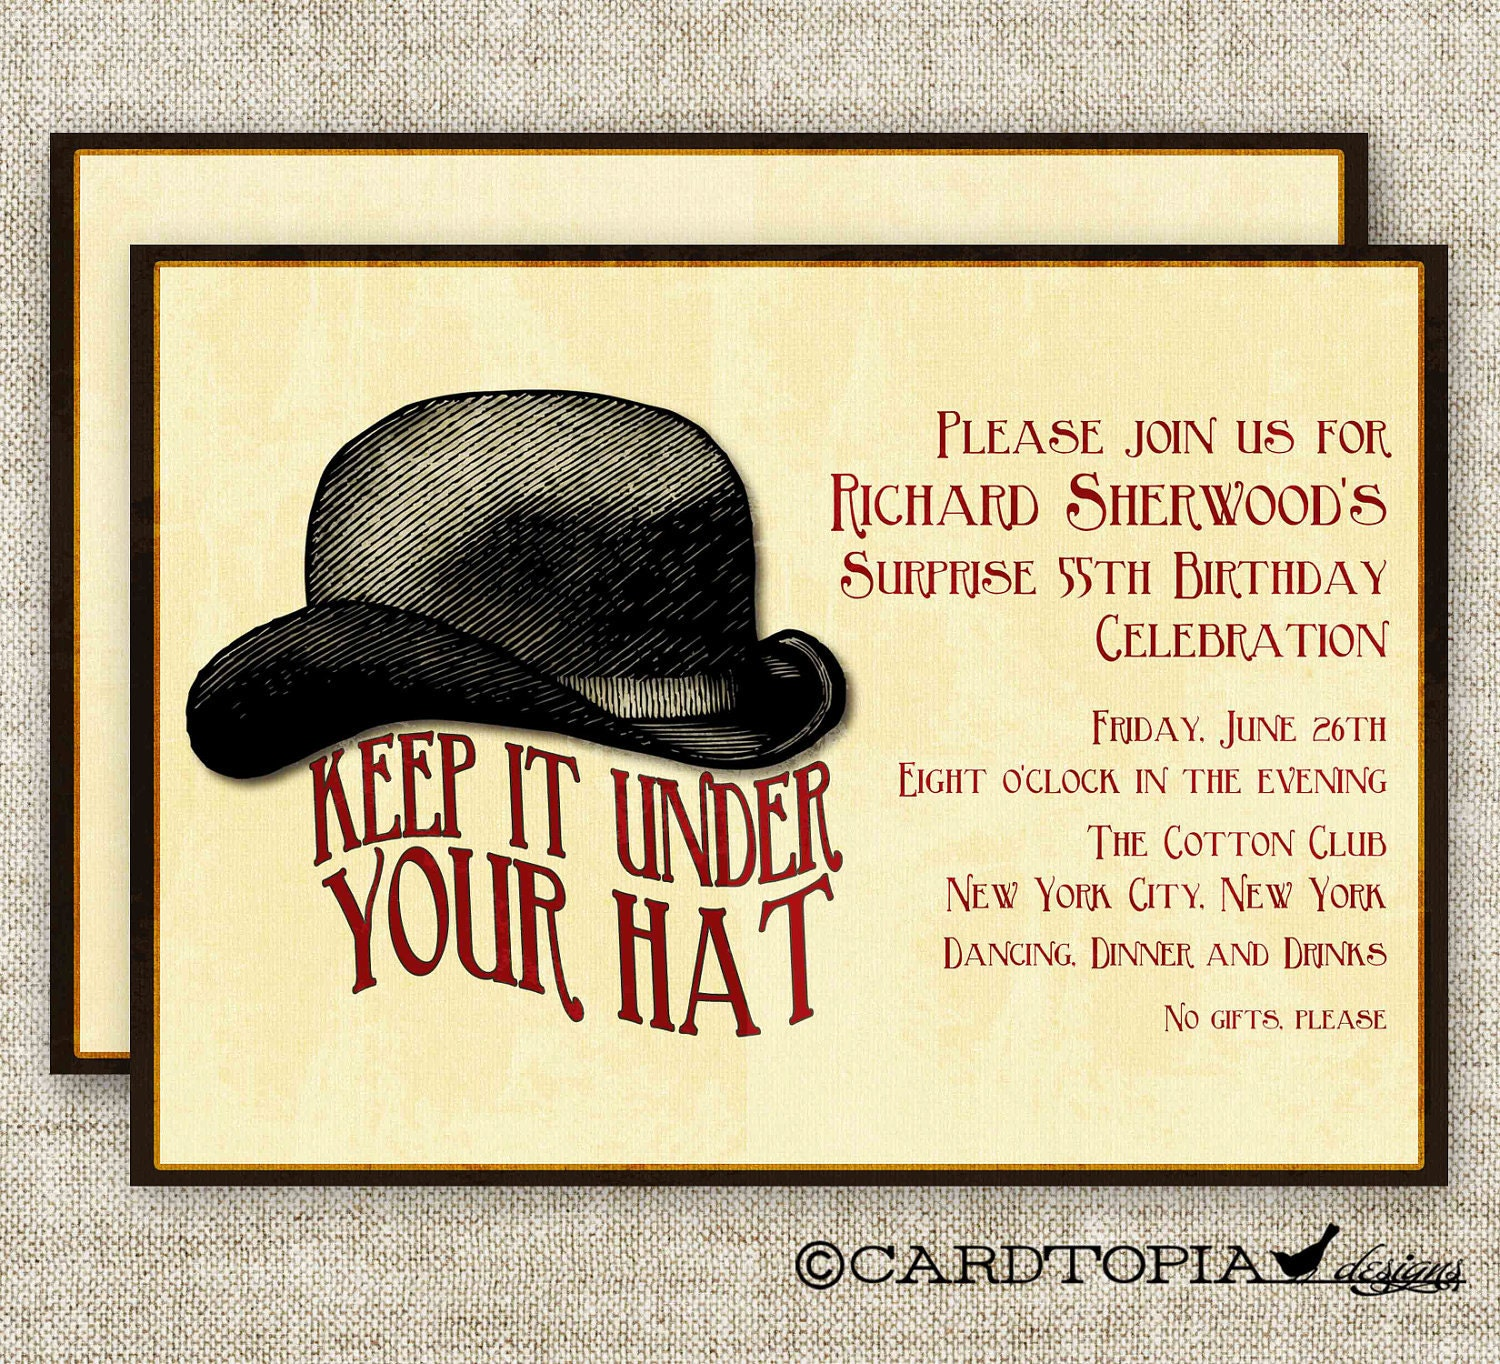 SURPRISE BIRTHDAY PARTY Invitations Vintage Bowler Hat Digital